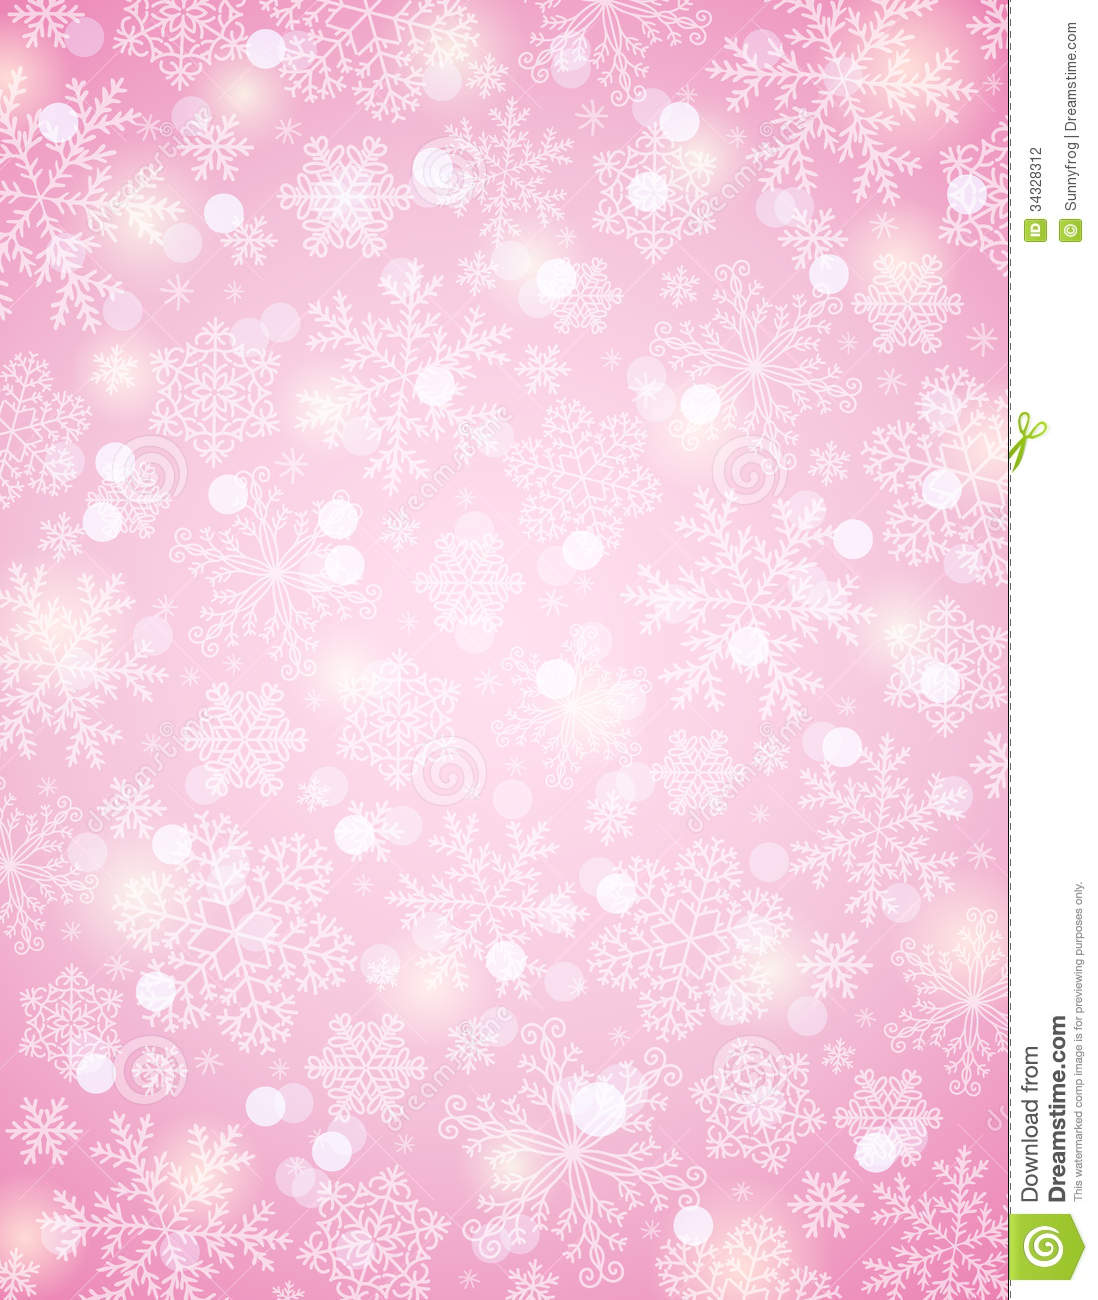 Pink Background With Snowflakes, Vector Stock Photography - Image ...